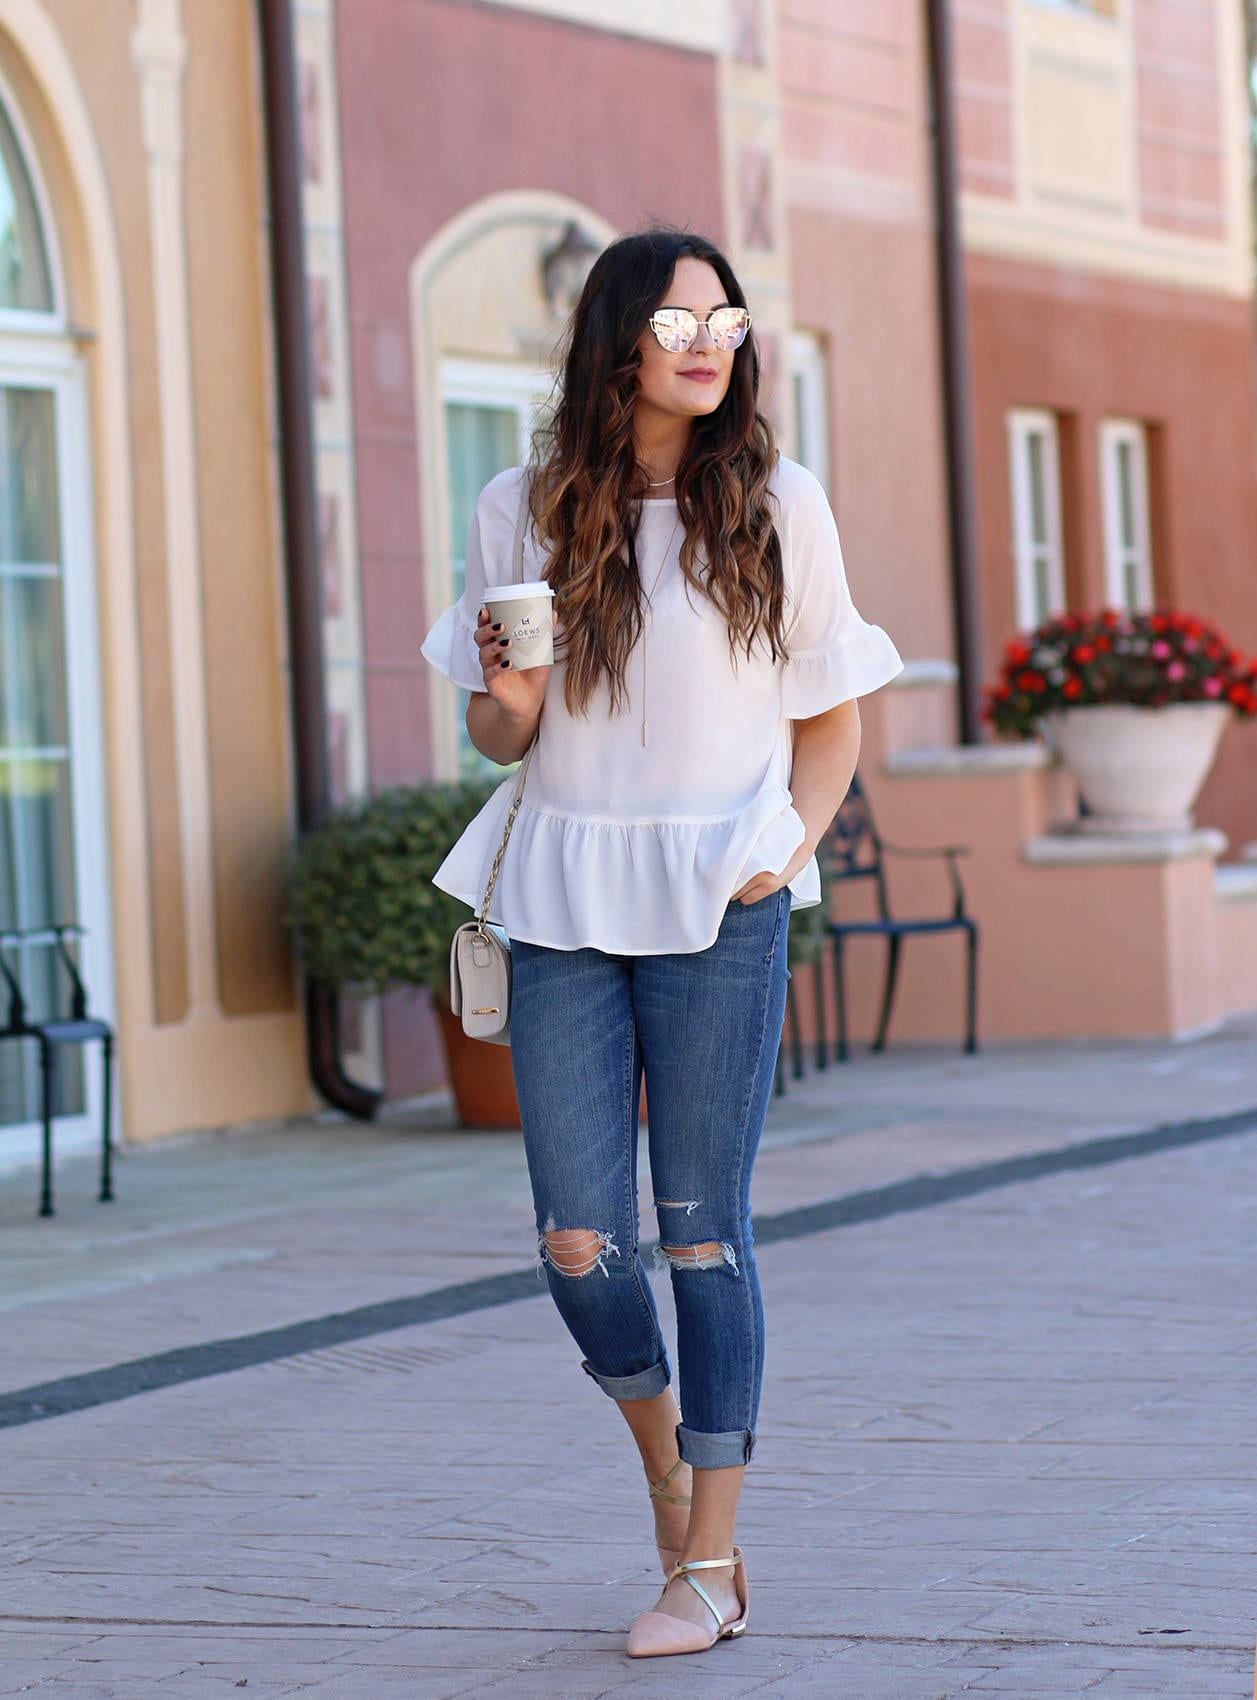 Fashion blogger Mash Elle shares a casual spring look | white ruffle shirt | Nordstrom, Express | ripped skinny jeans | comfortable Forever 21 flats.